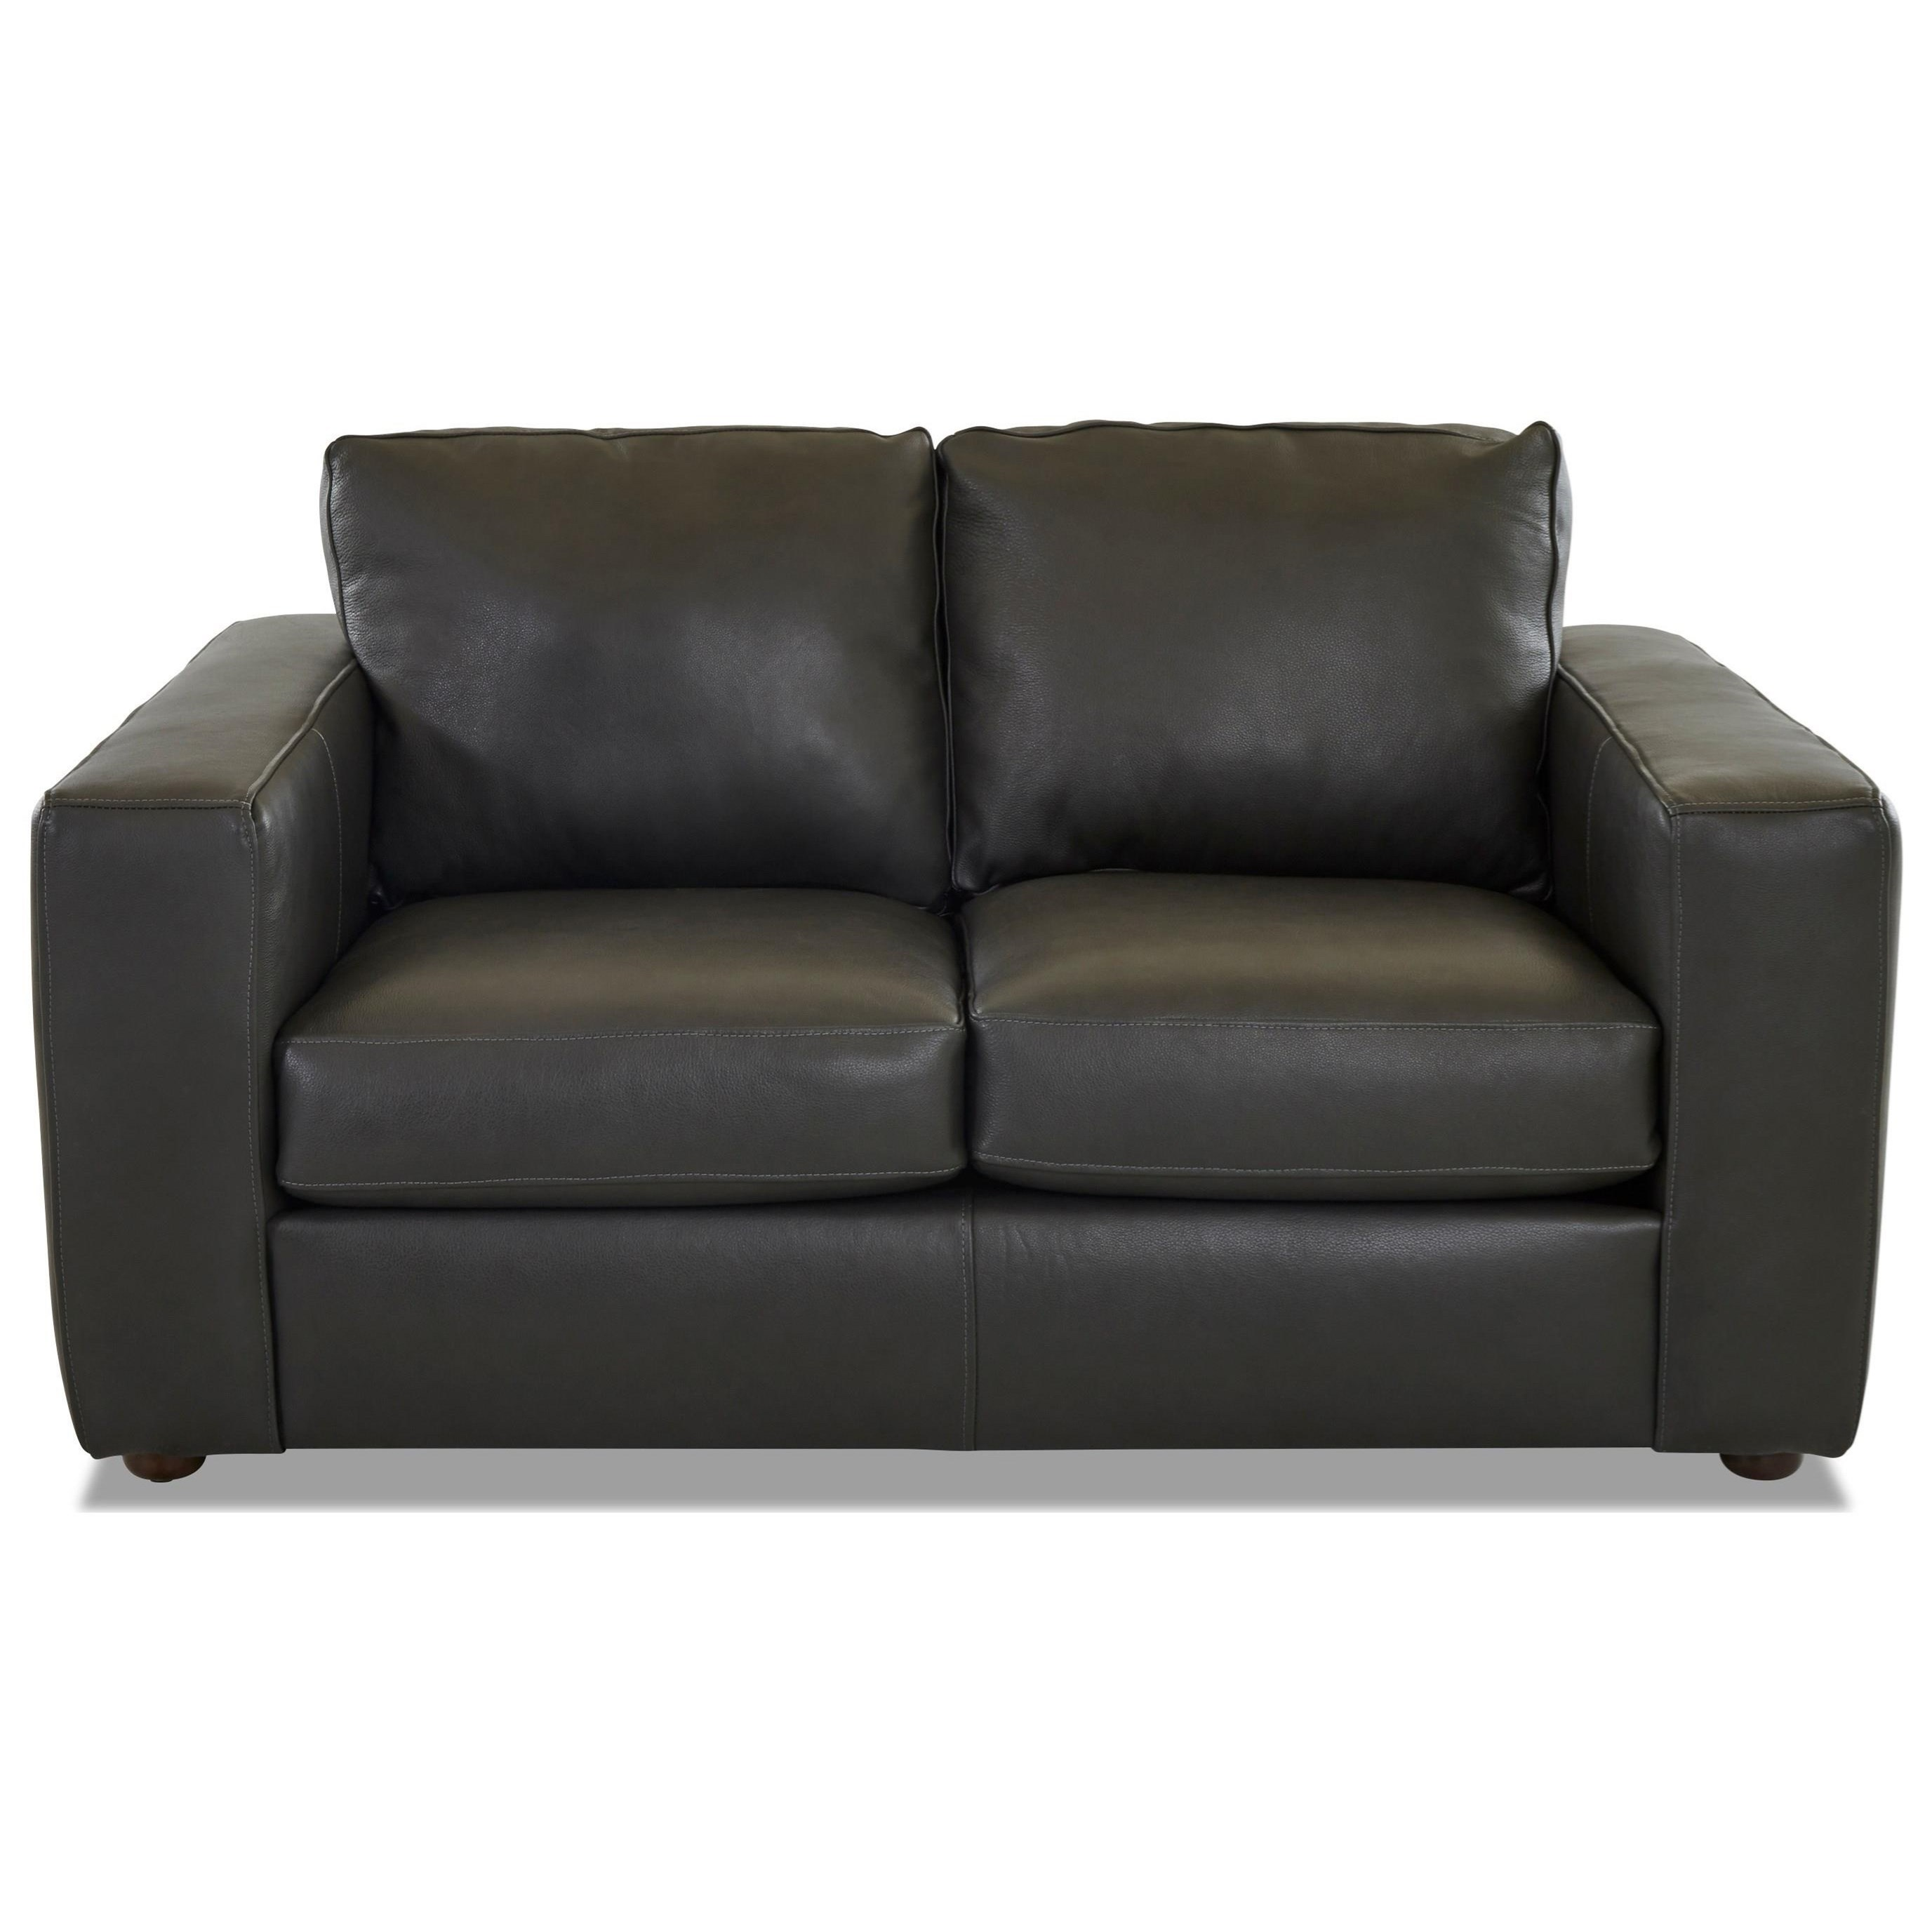 Gus Contemporary Loveseat by Klaussner at Johnny Janosik